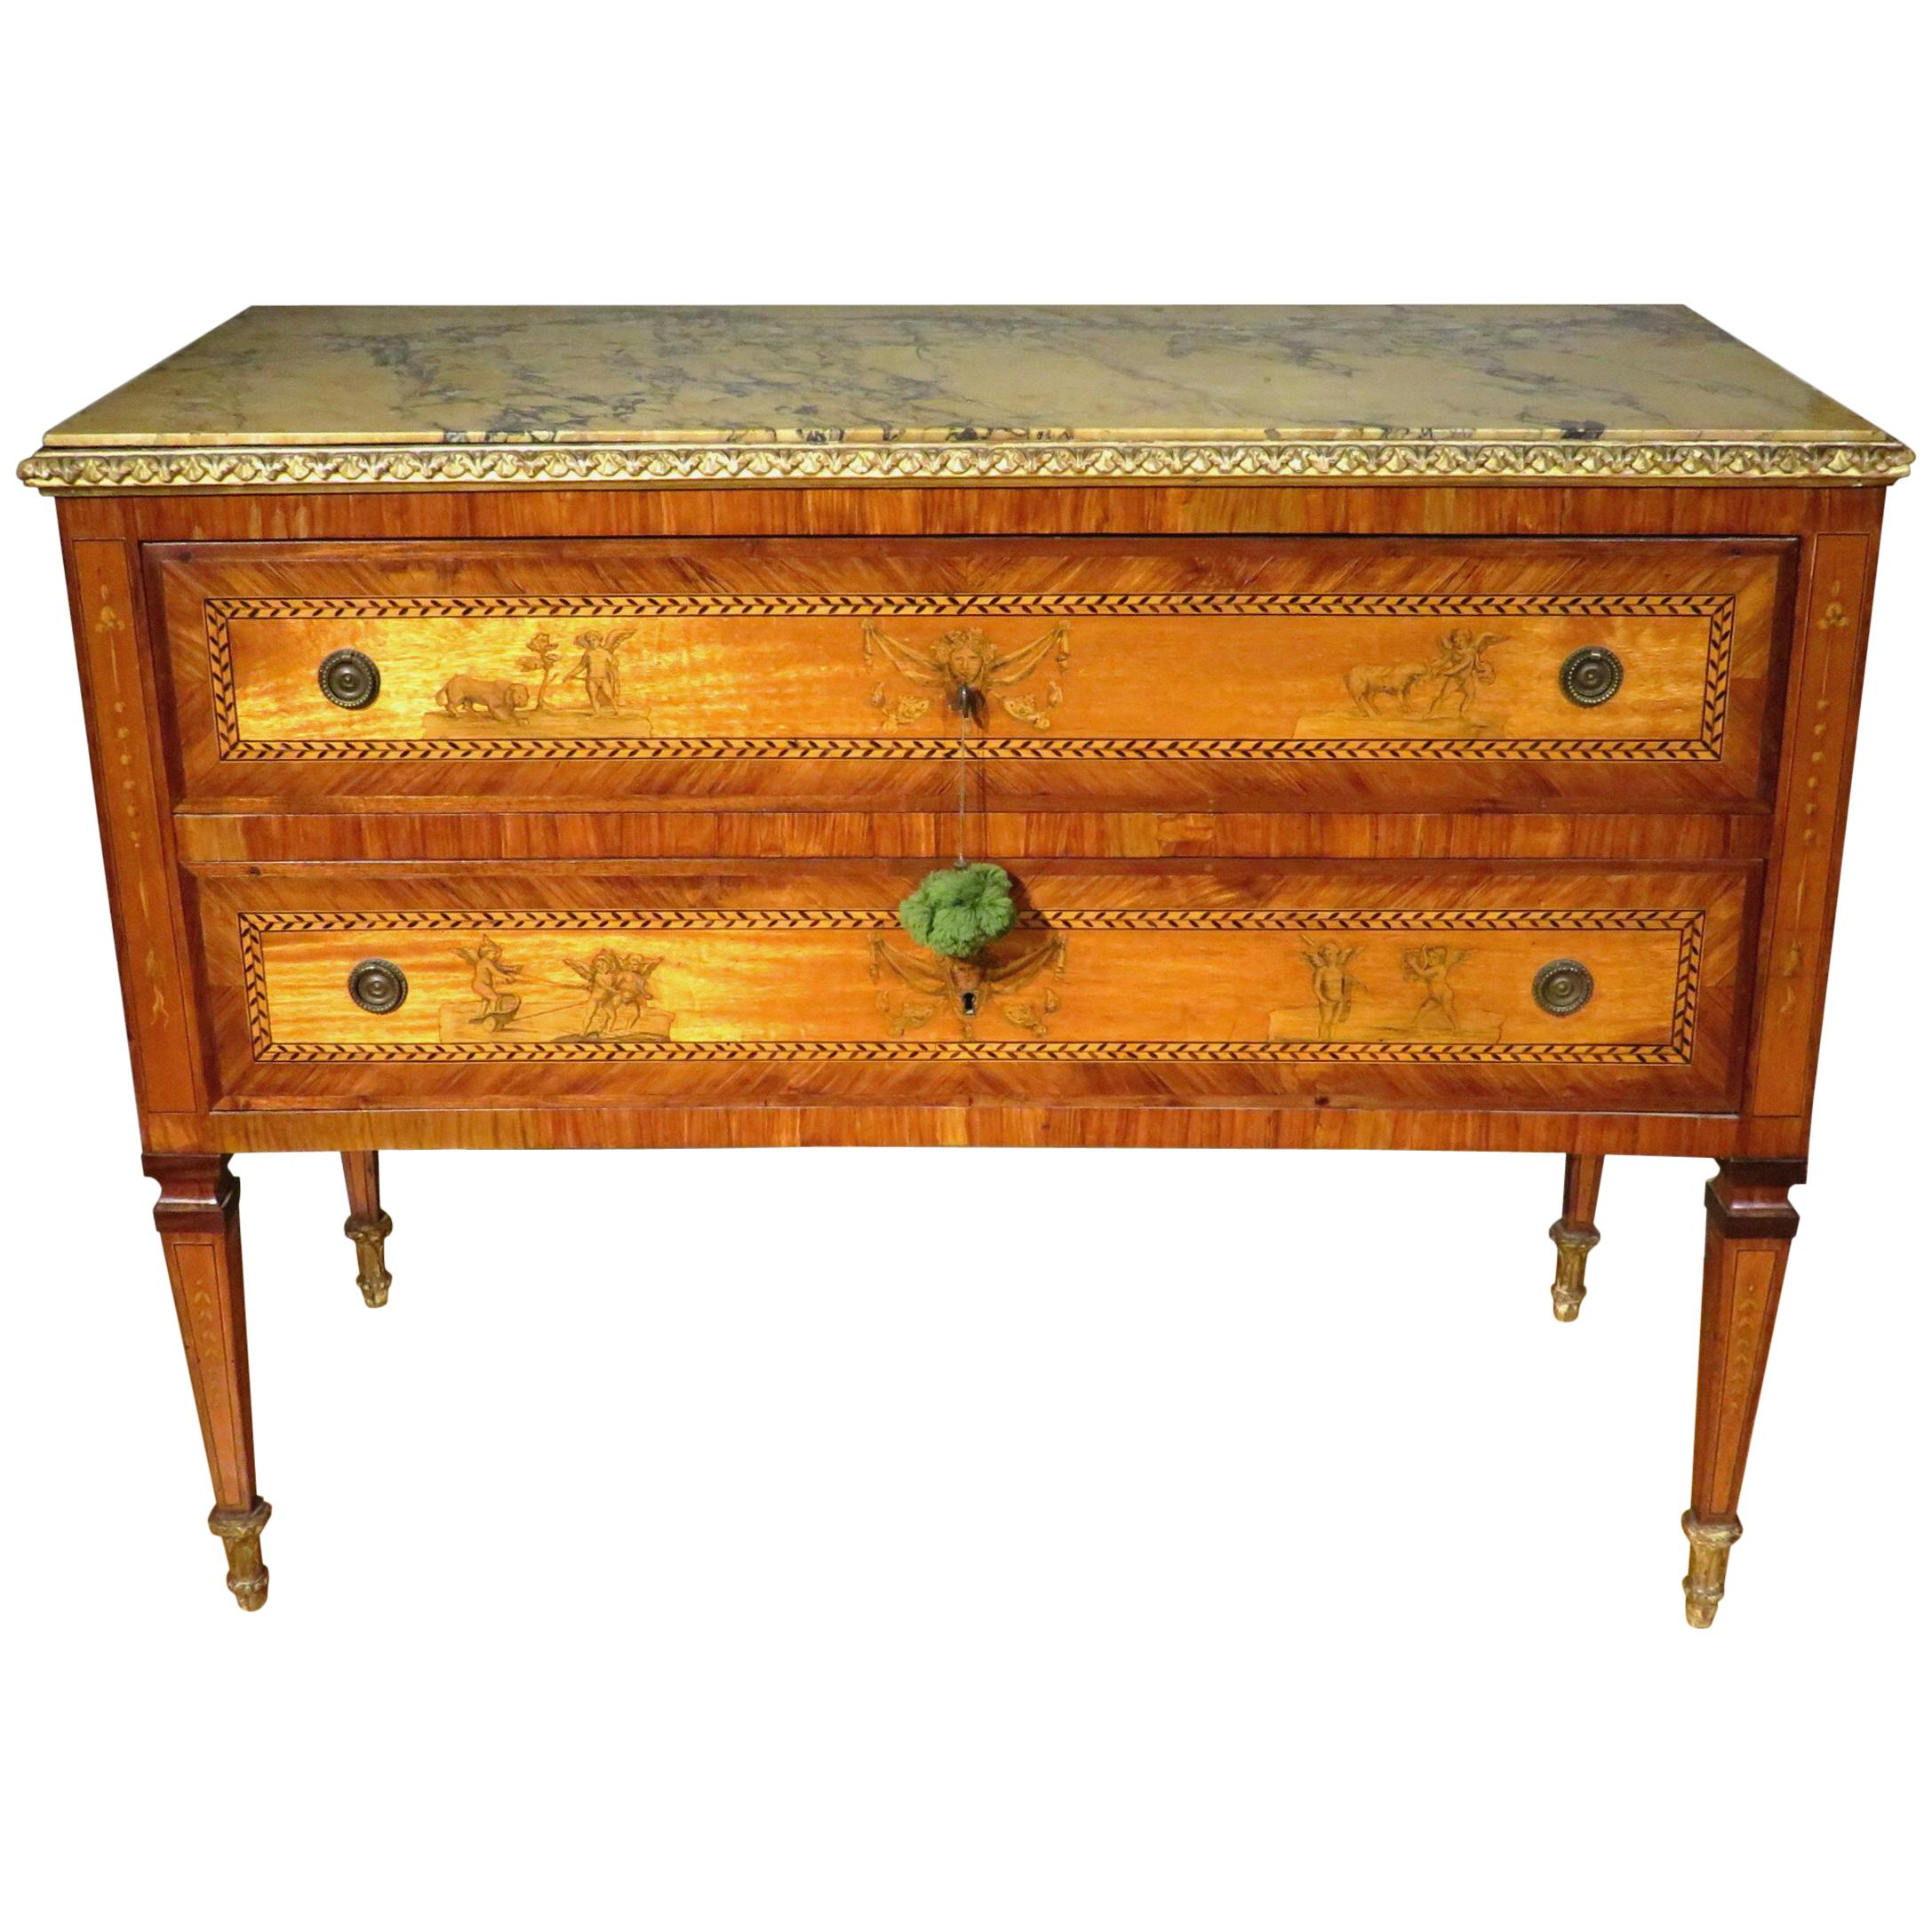 Exceptional 18th Century Italian Neoclassical Parquetry and Marquetry Commode